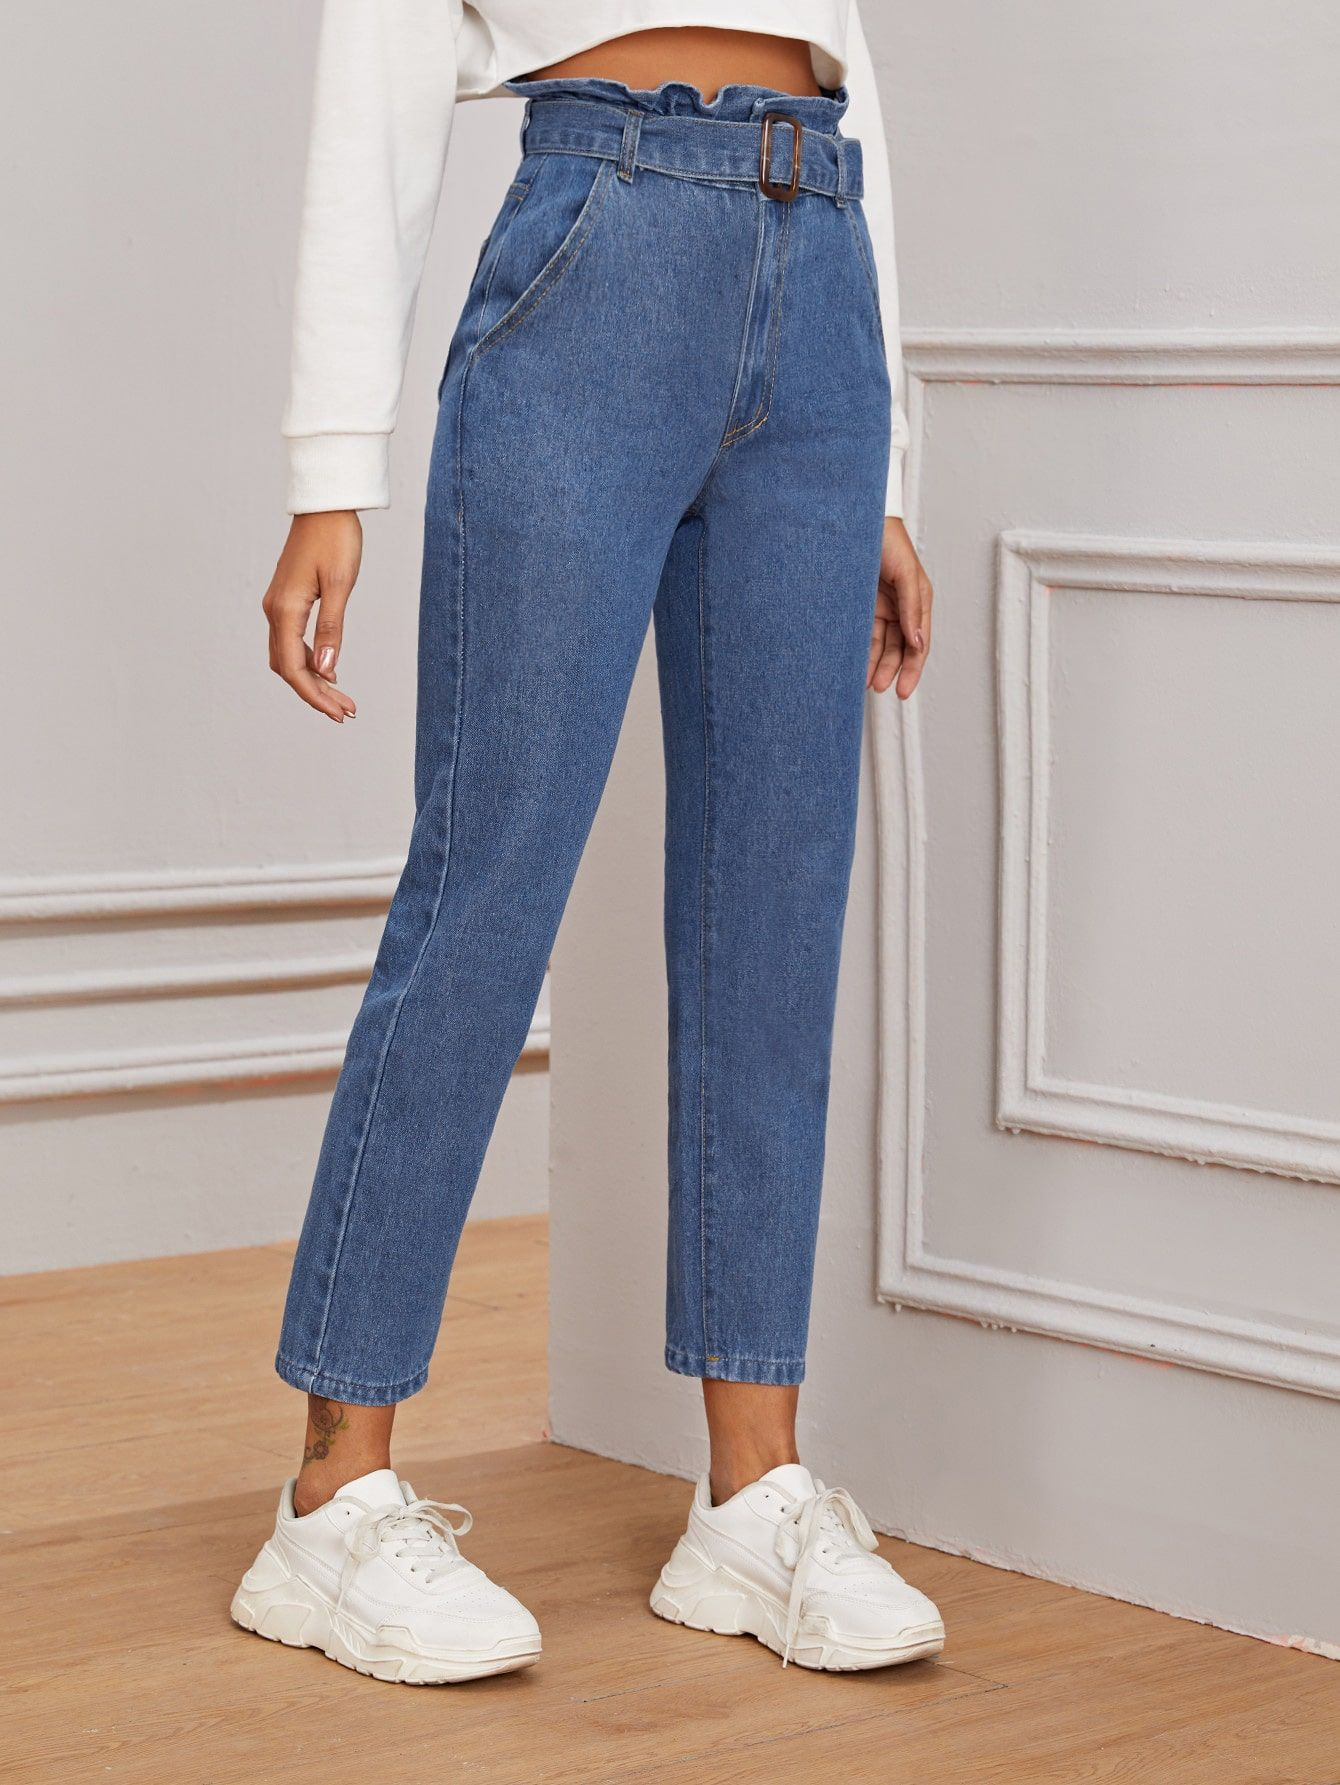 Ad: Paperbag Waist Belted Crop Mom Jeans. Tags: Casual, Blue